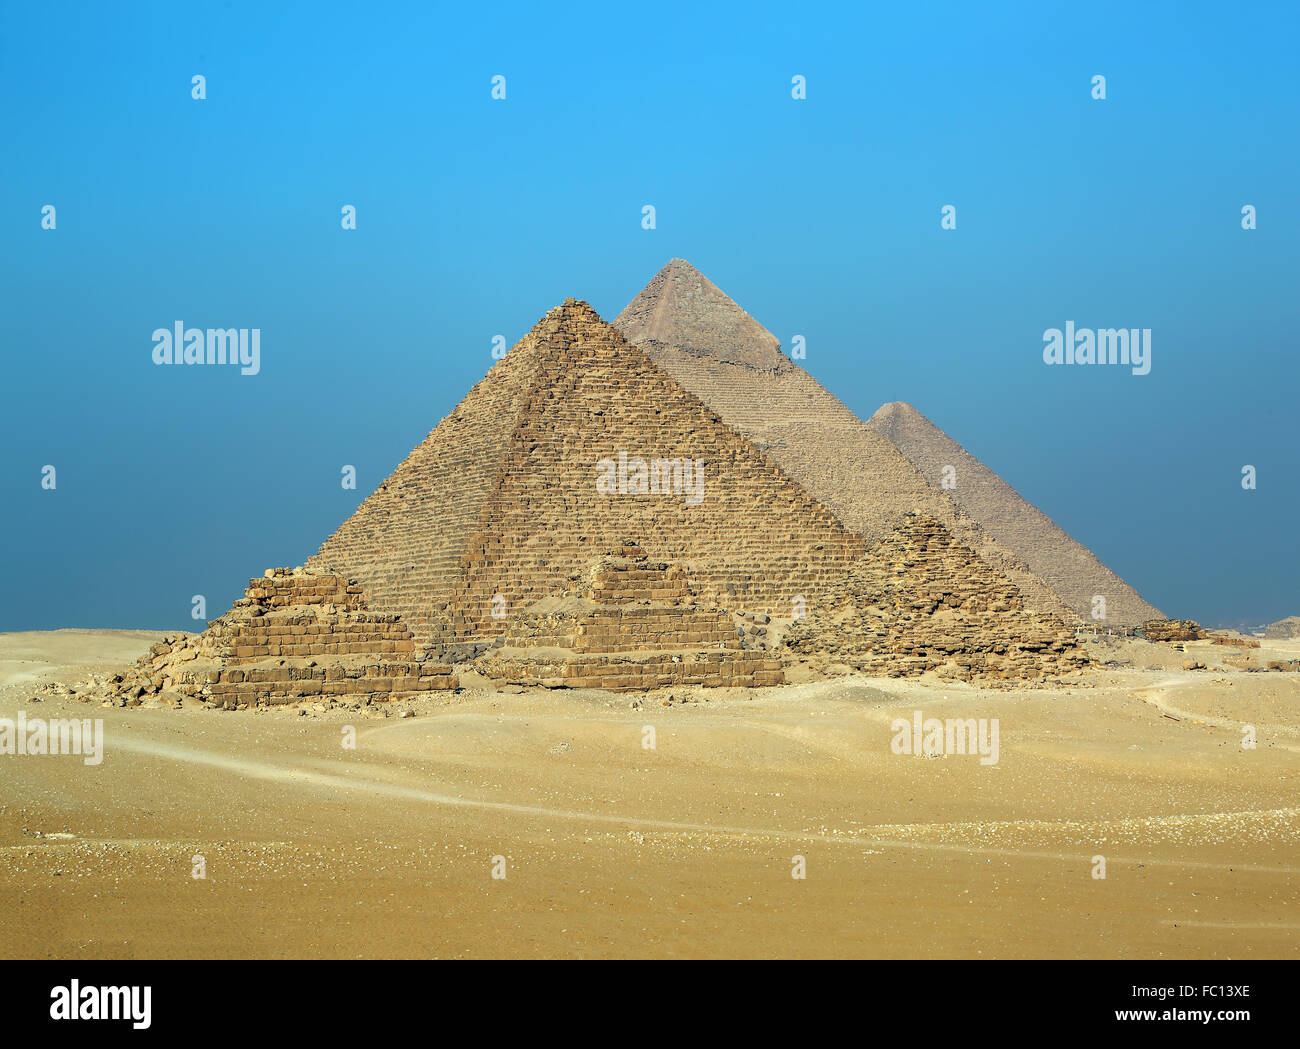 Great pyramids in Egypt - Stock Image